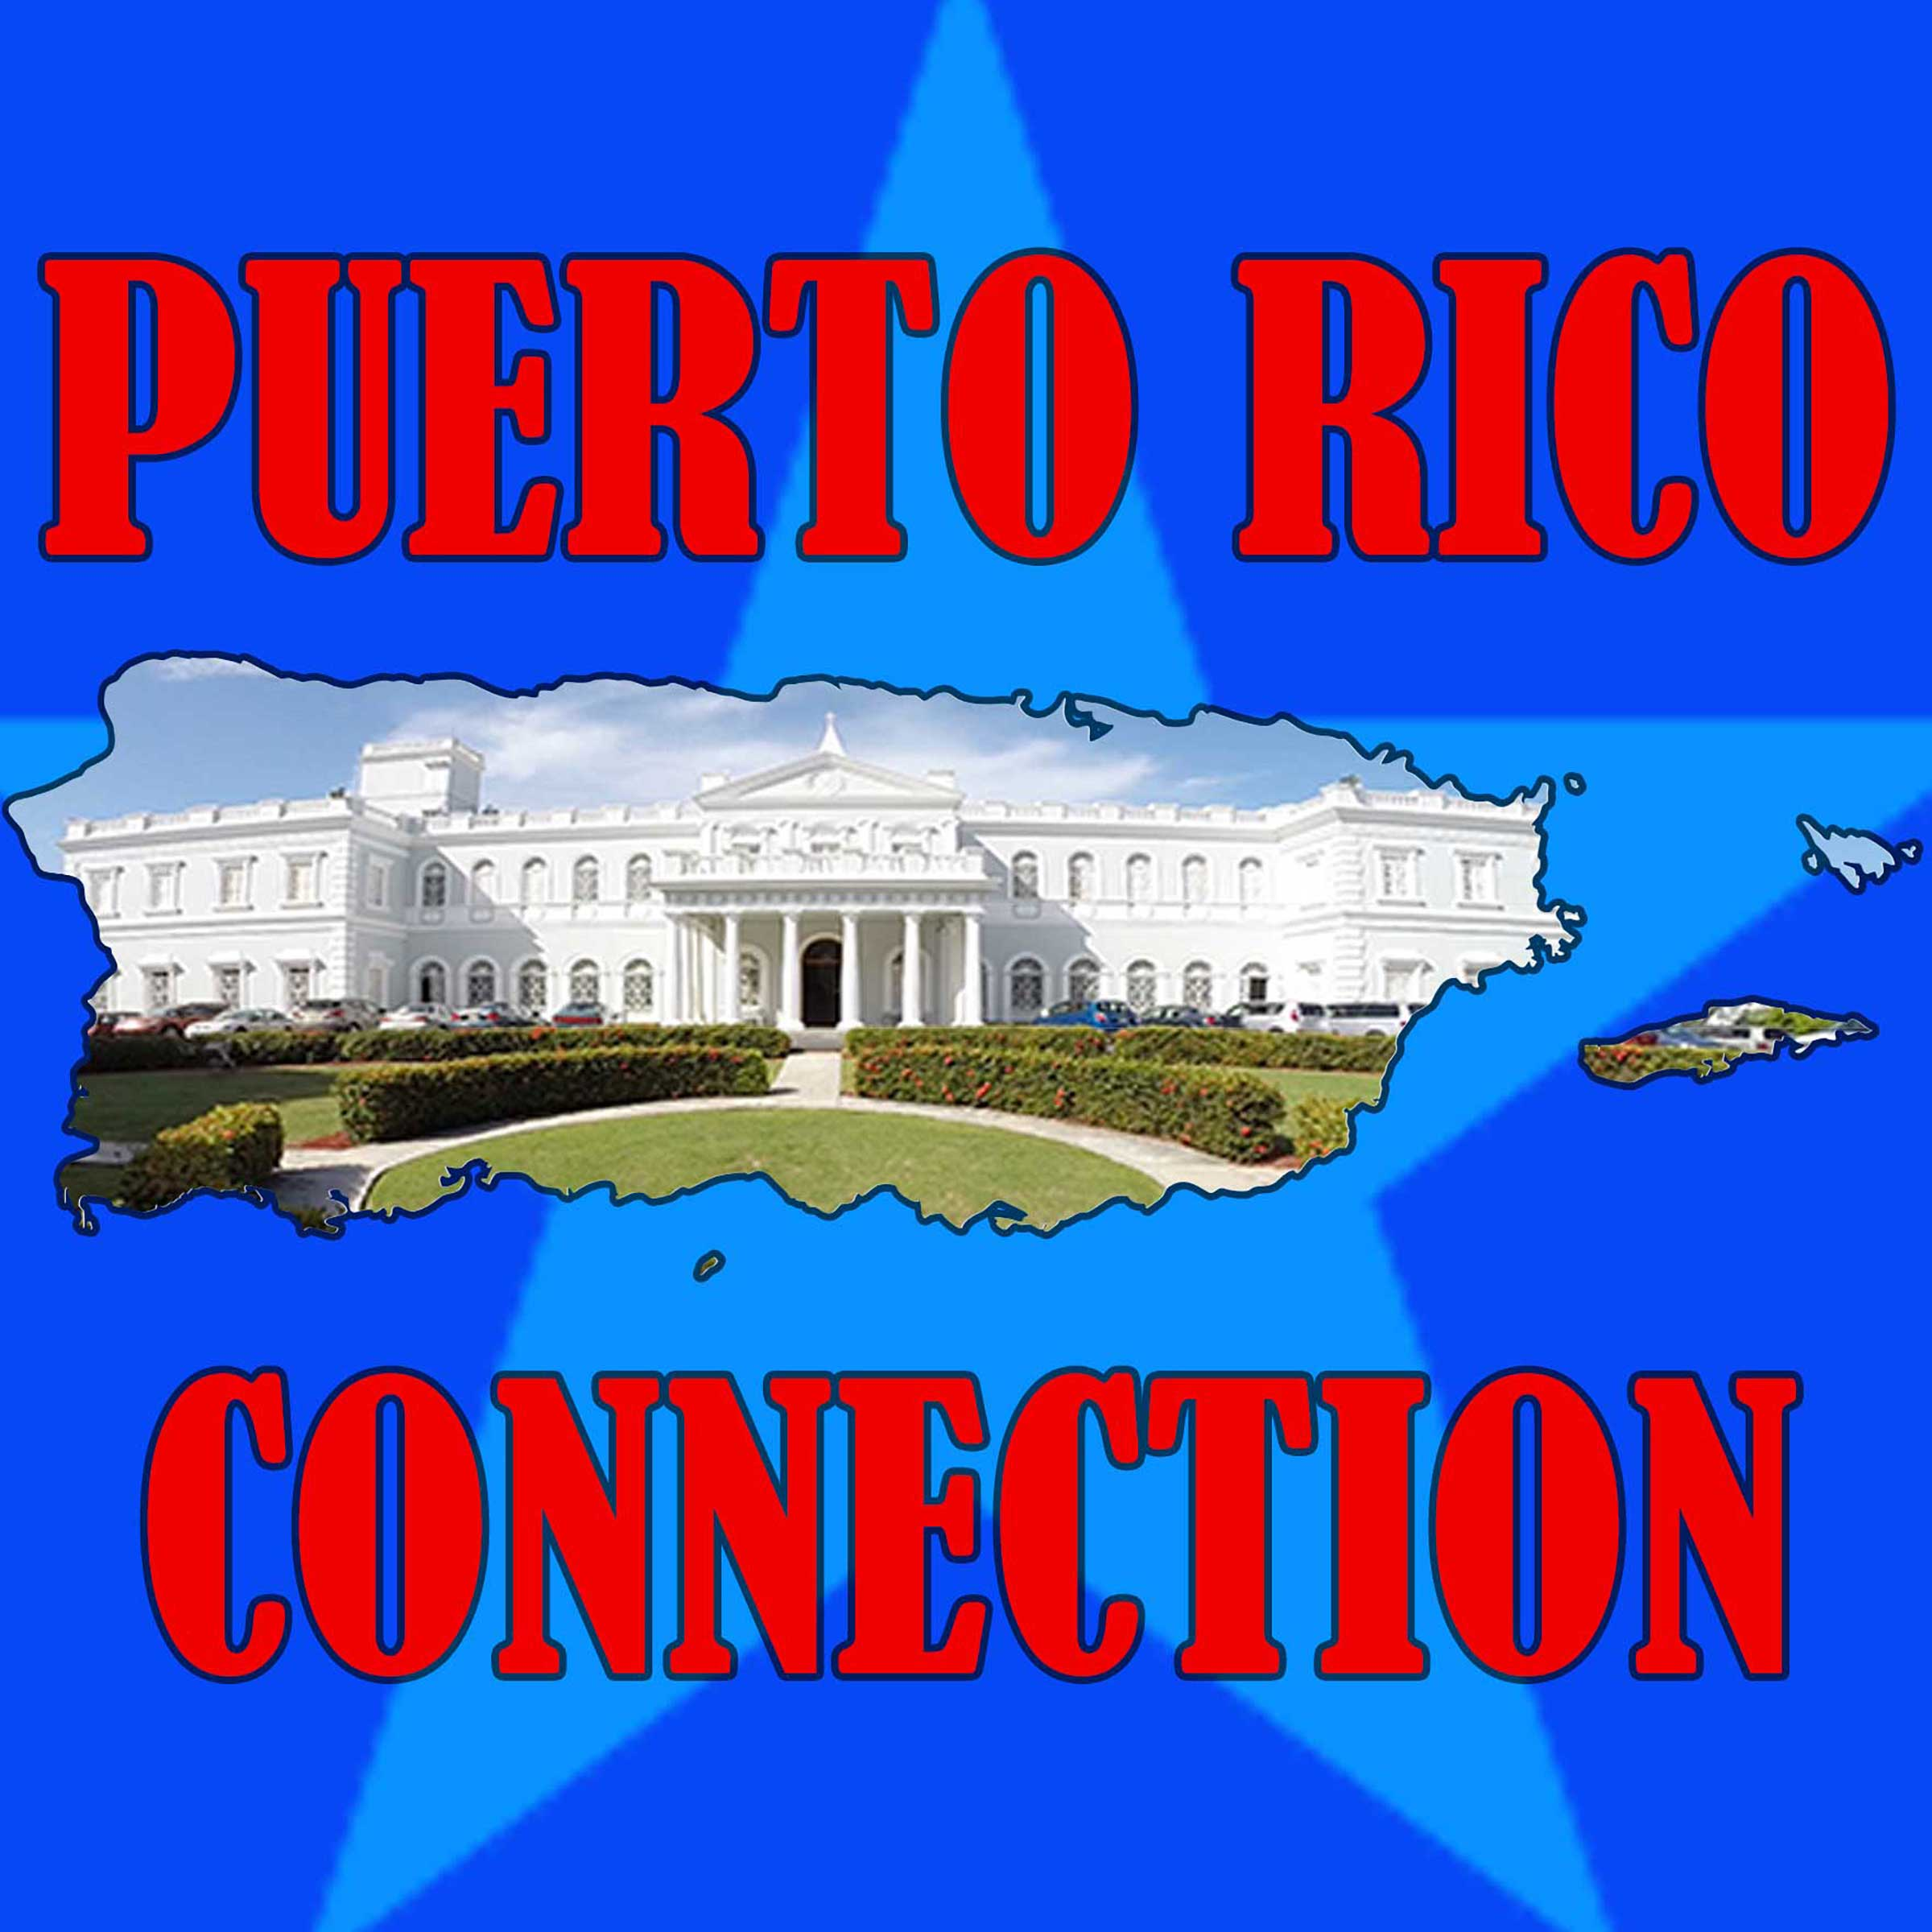 The Puerto Rico Connection